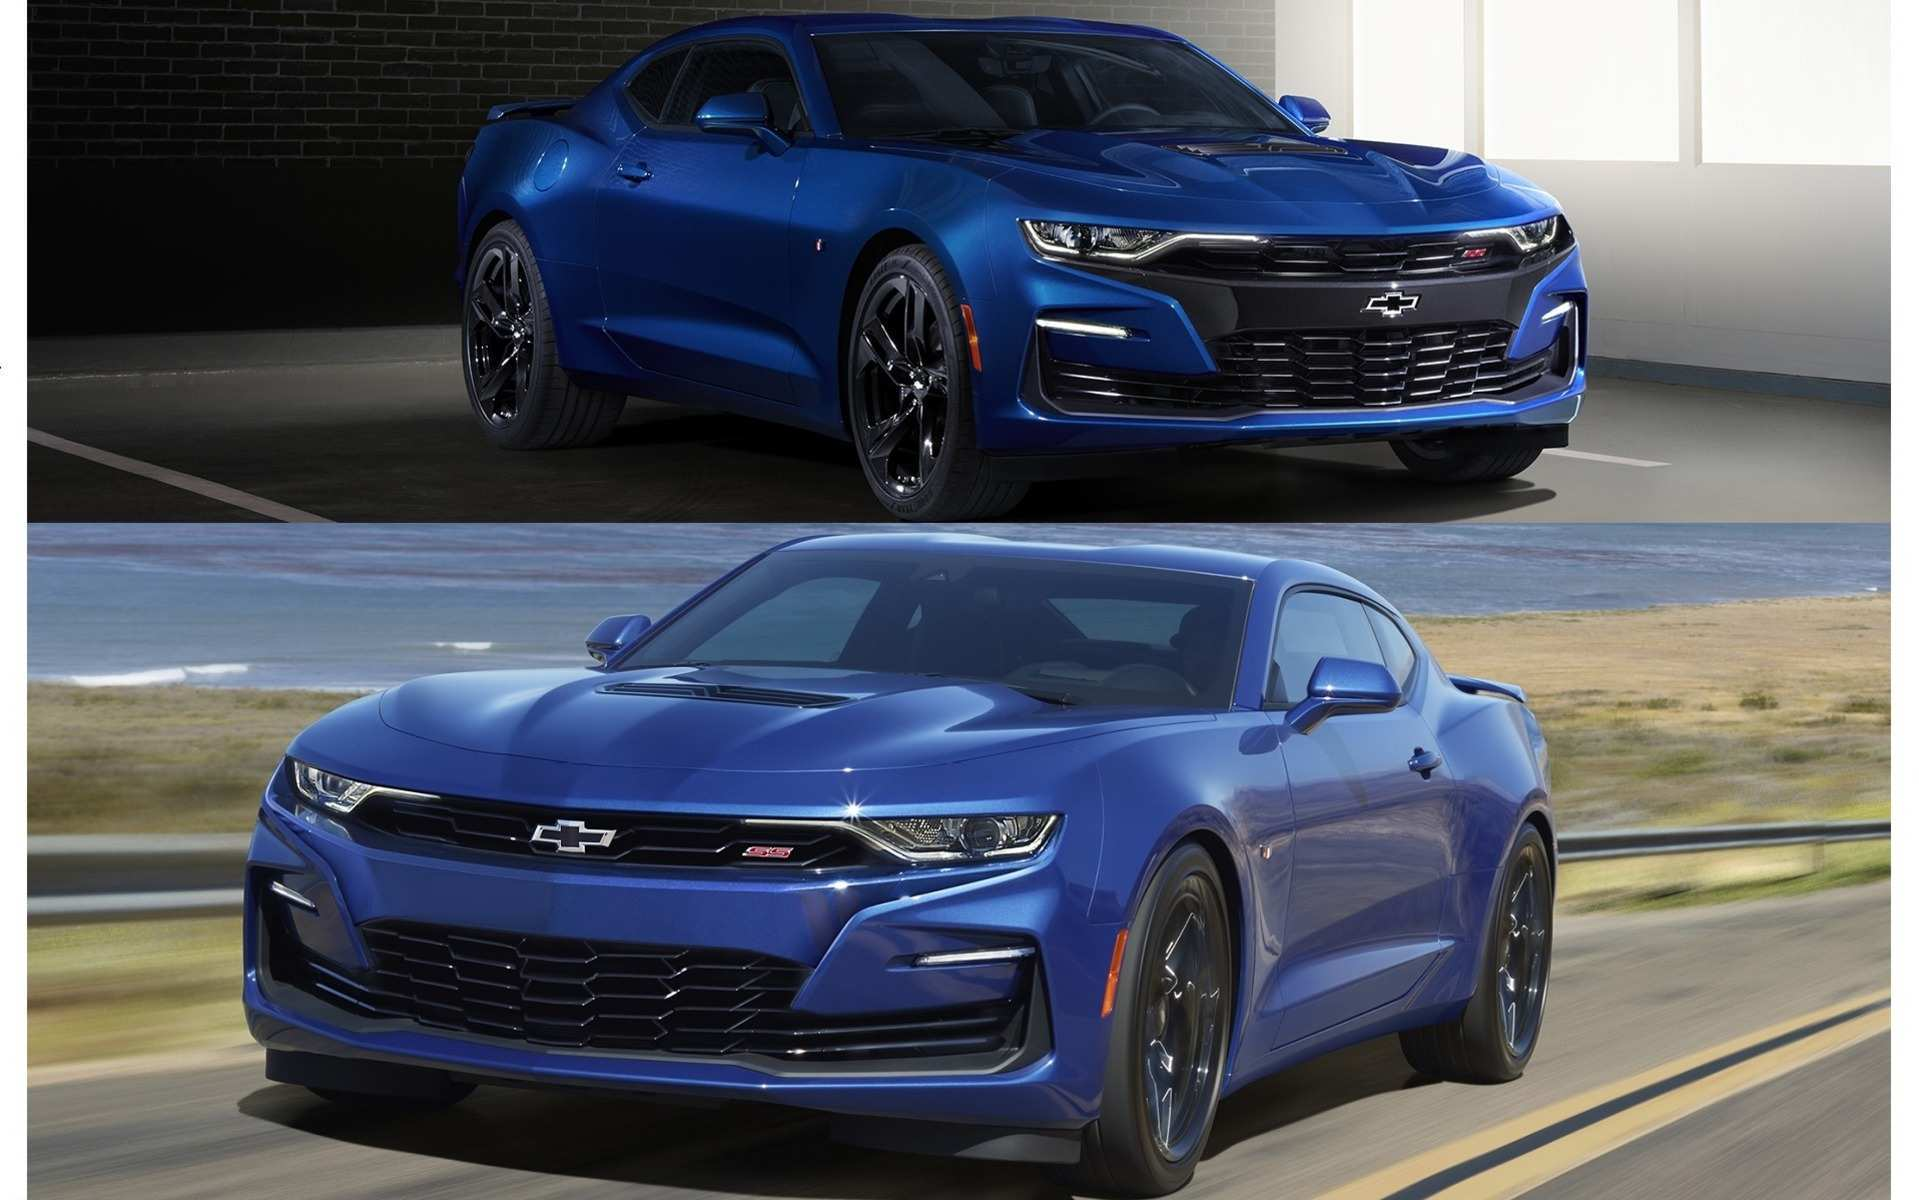 47 Best Review Chevrolet Models 2020 Engine with Chevrolet Models 2020